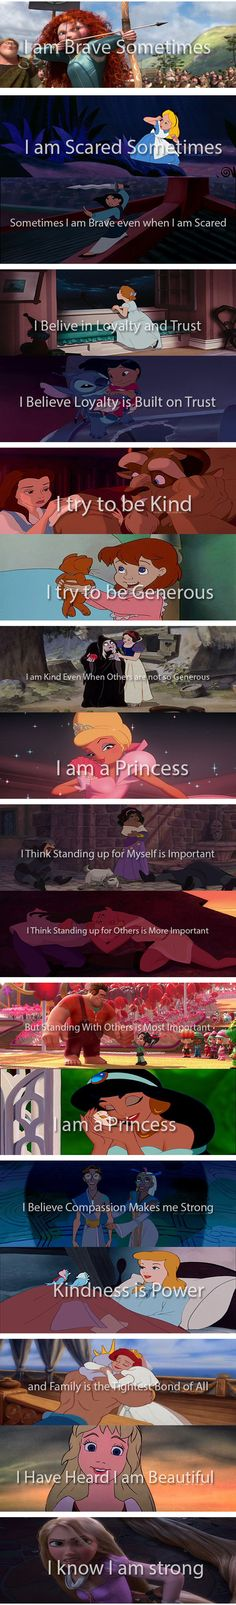 I am a princess and long may I reign.